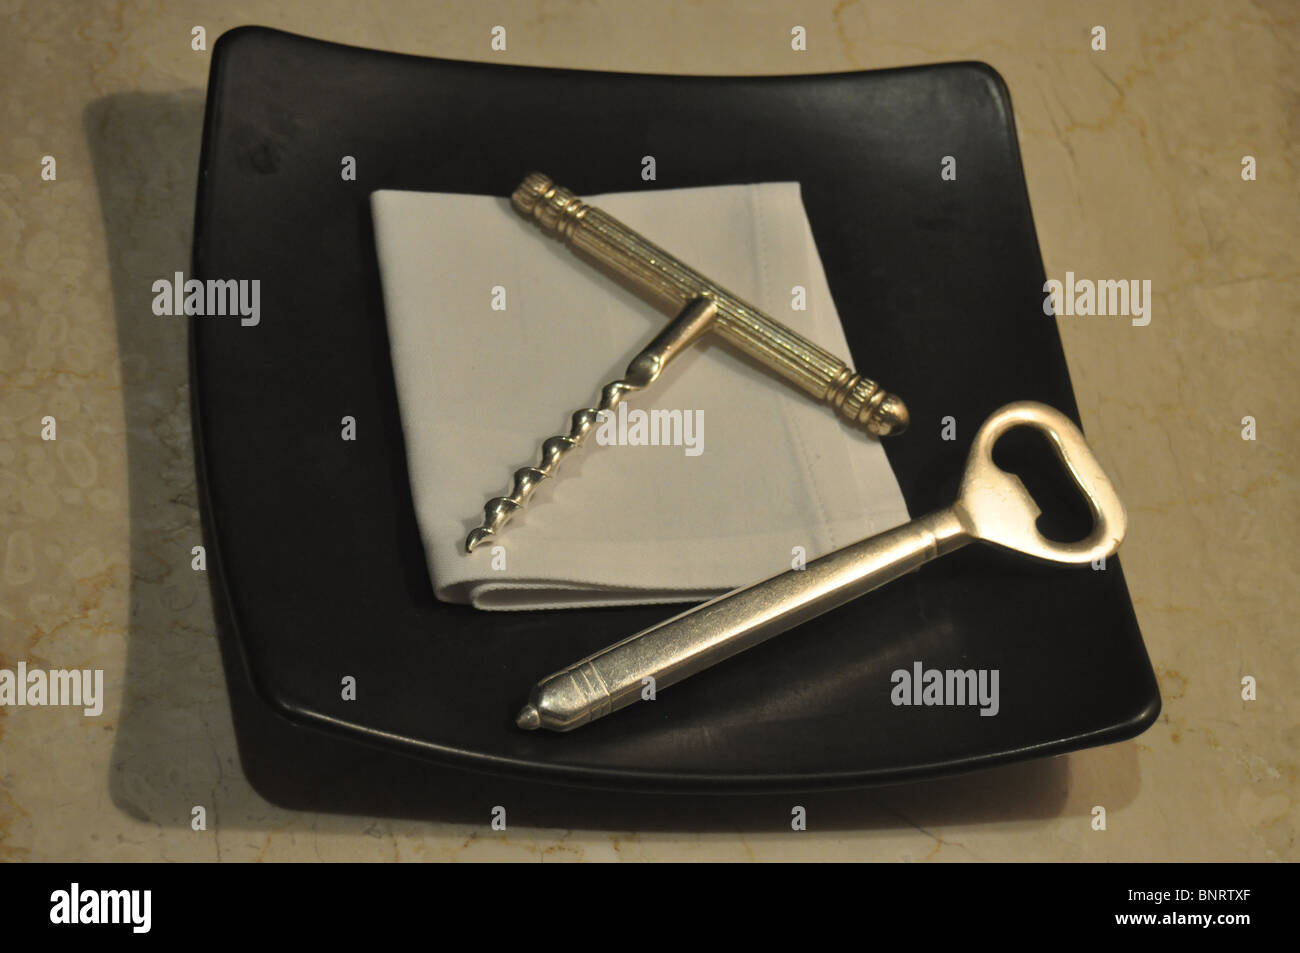 Openers Stock Photos Amp Openers Stock Images Alamy